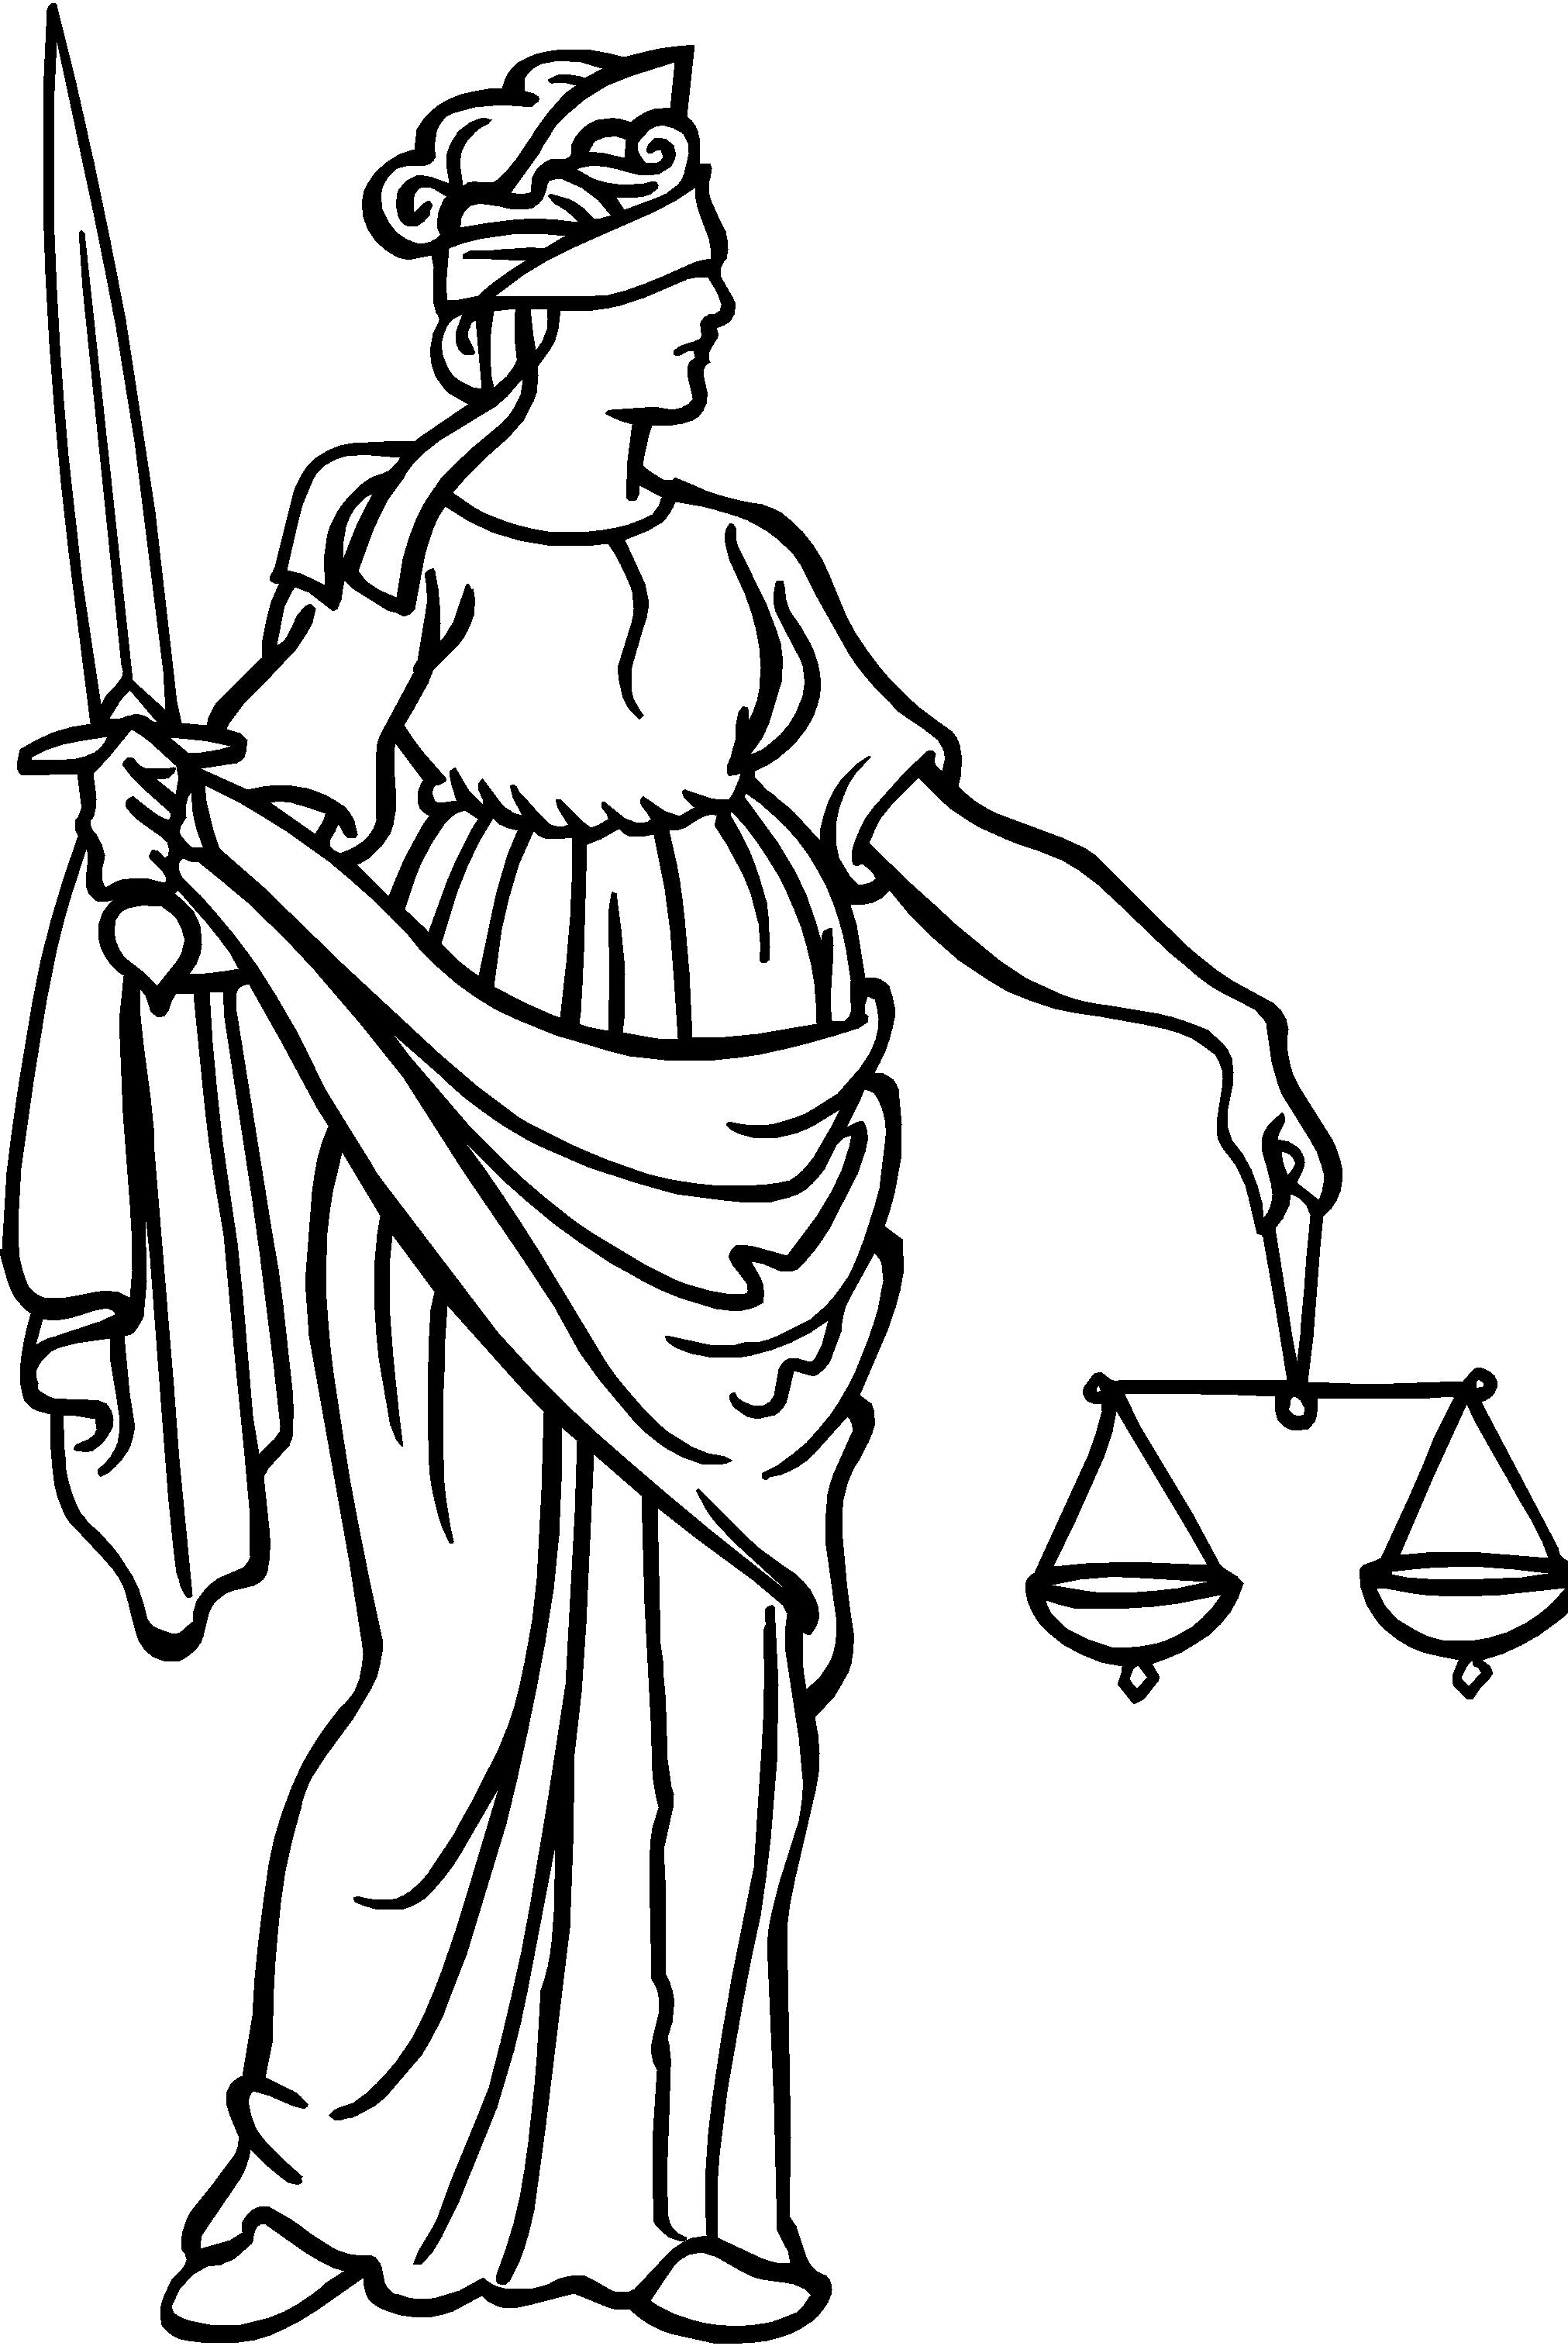 Blind Justice Clipart 20 Free Cliparts